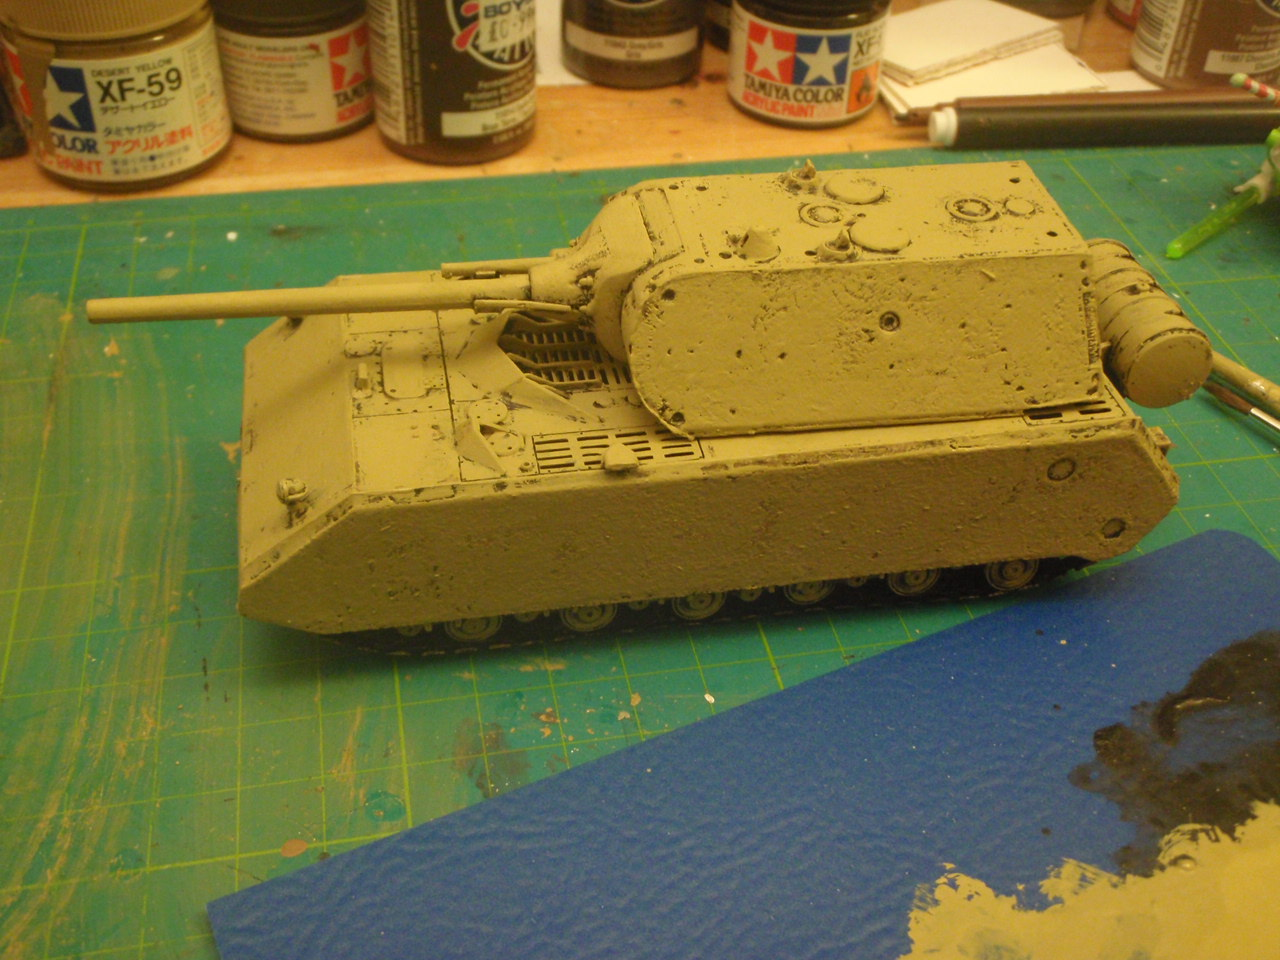 Geordie's Big Battles: The Mighty Maus in 1/72 [3]: Dirty